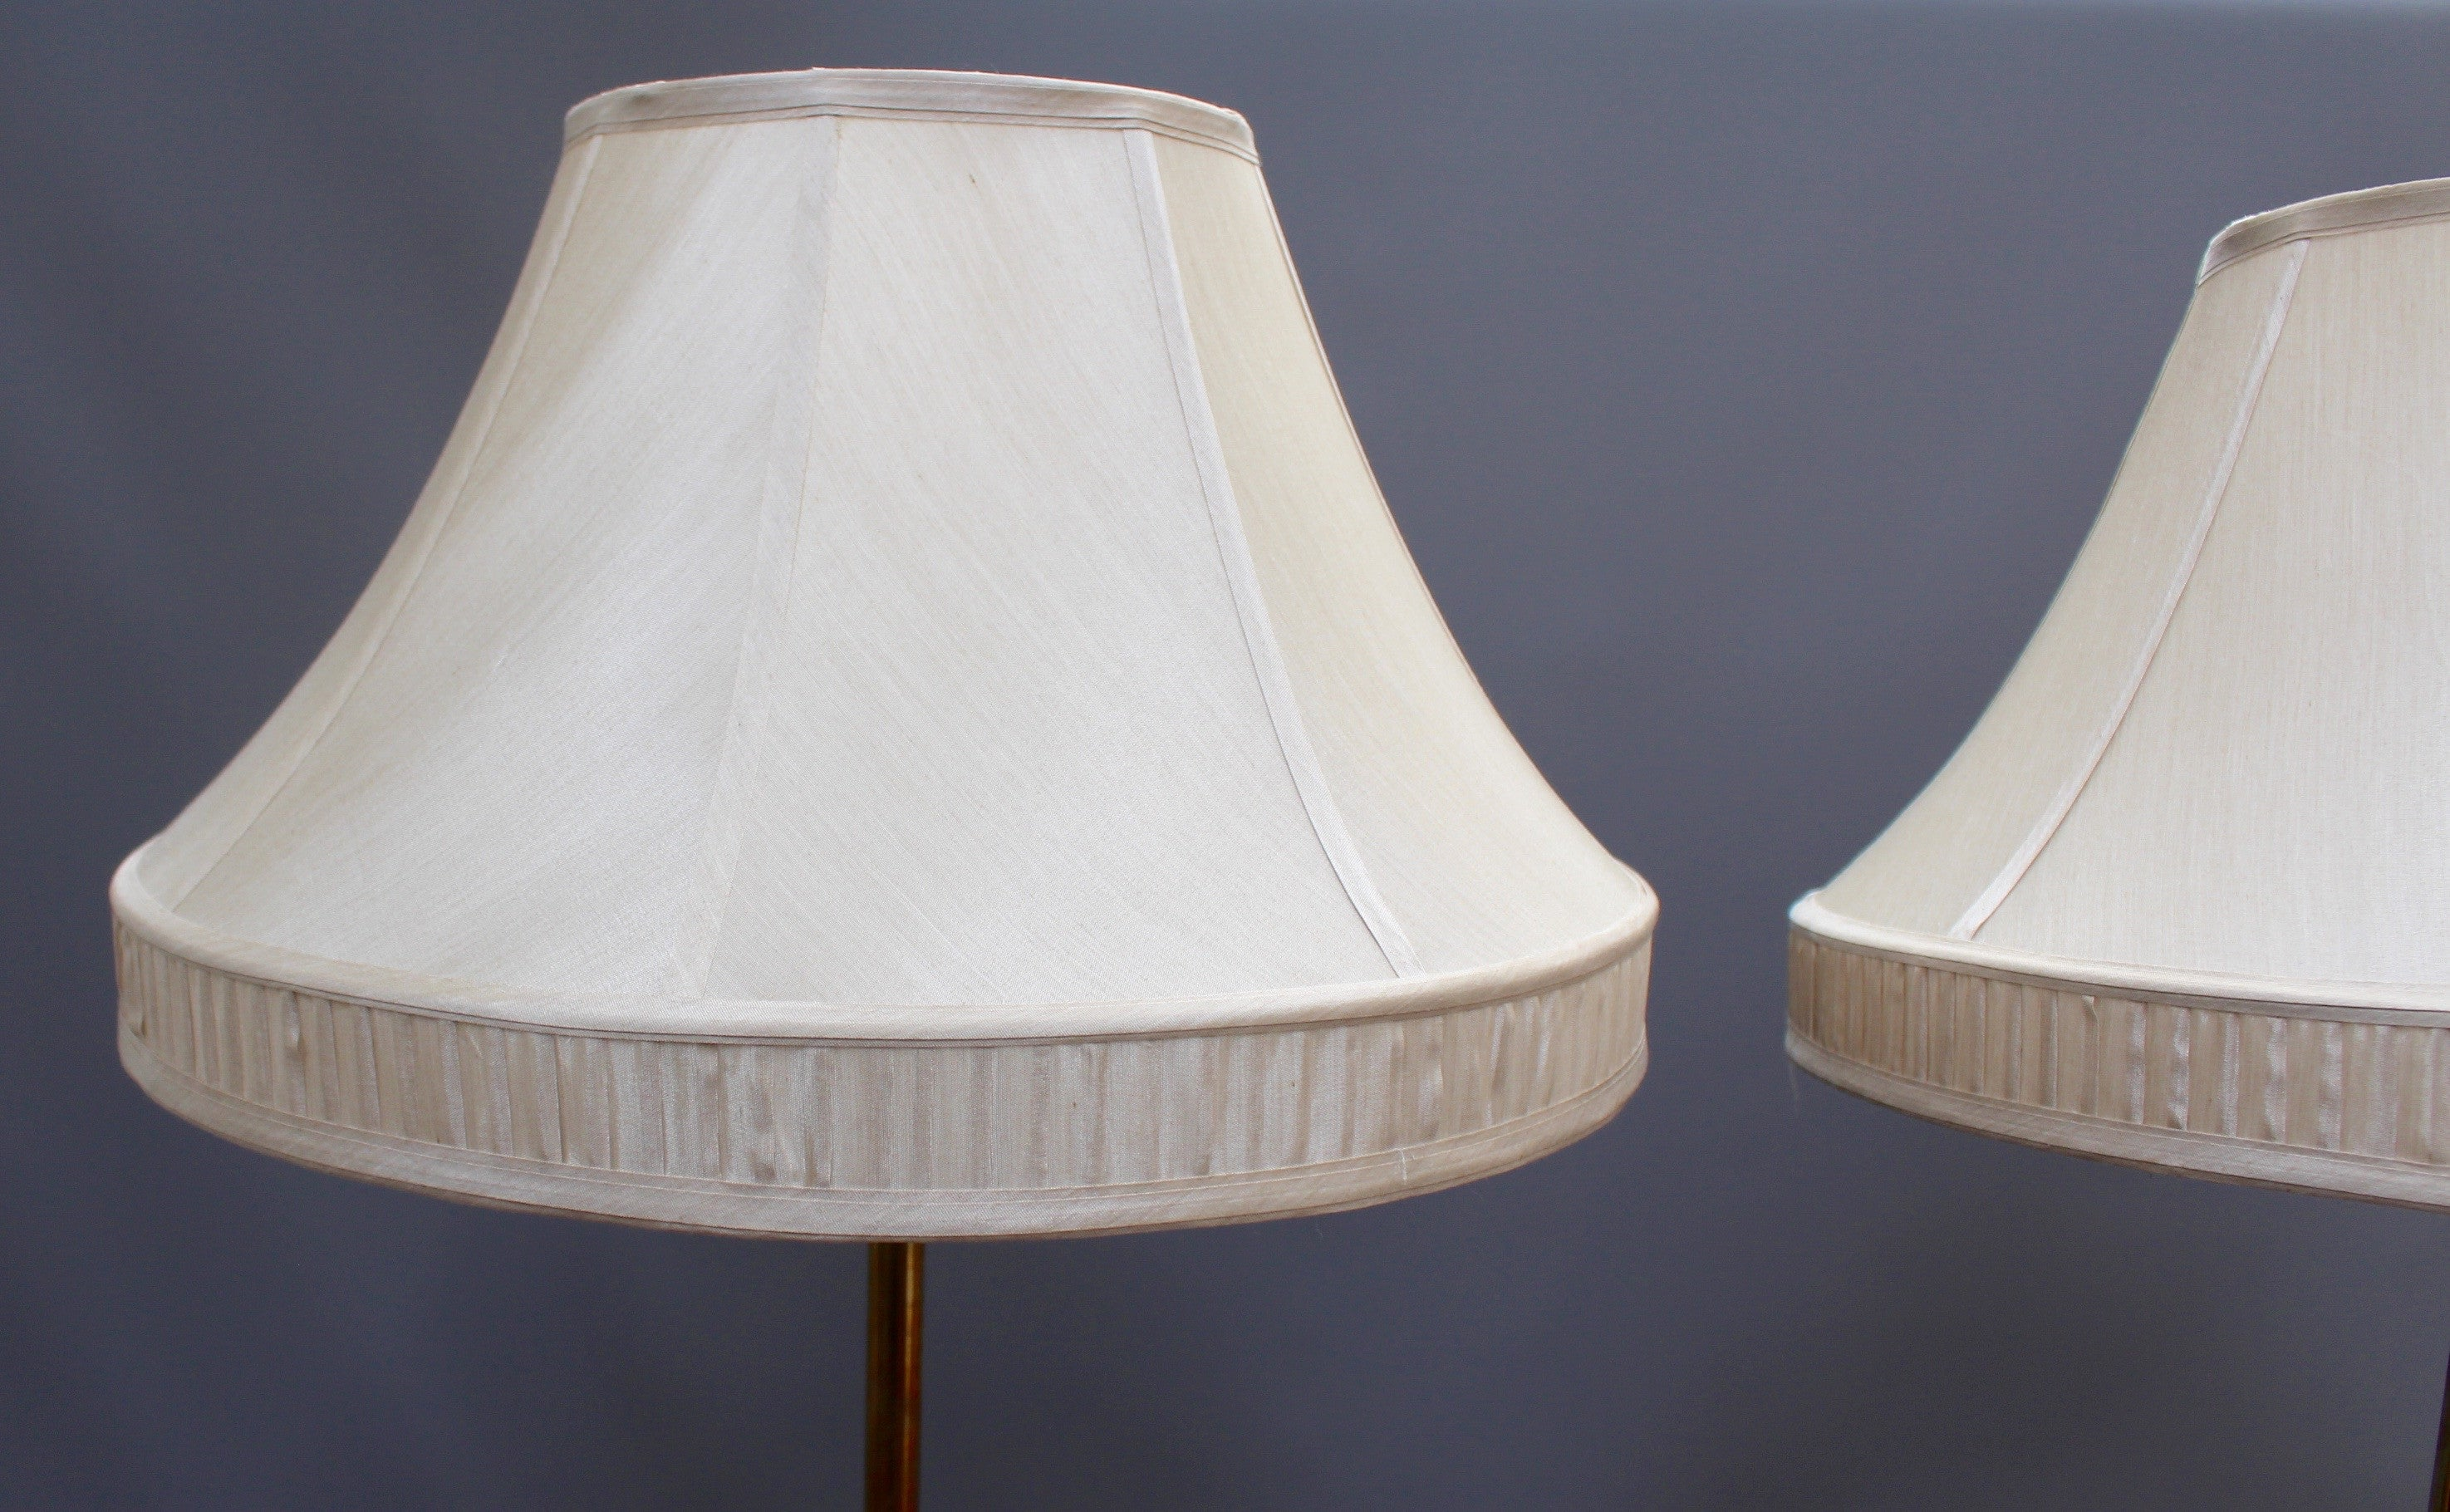 Pair of Standing Adjustable Lamps (c. Early 20th Century)